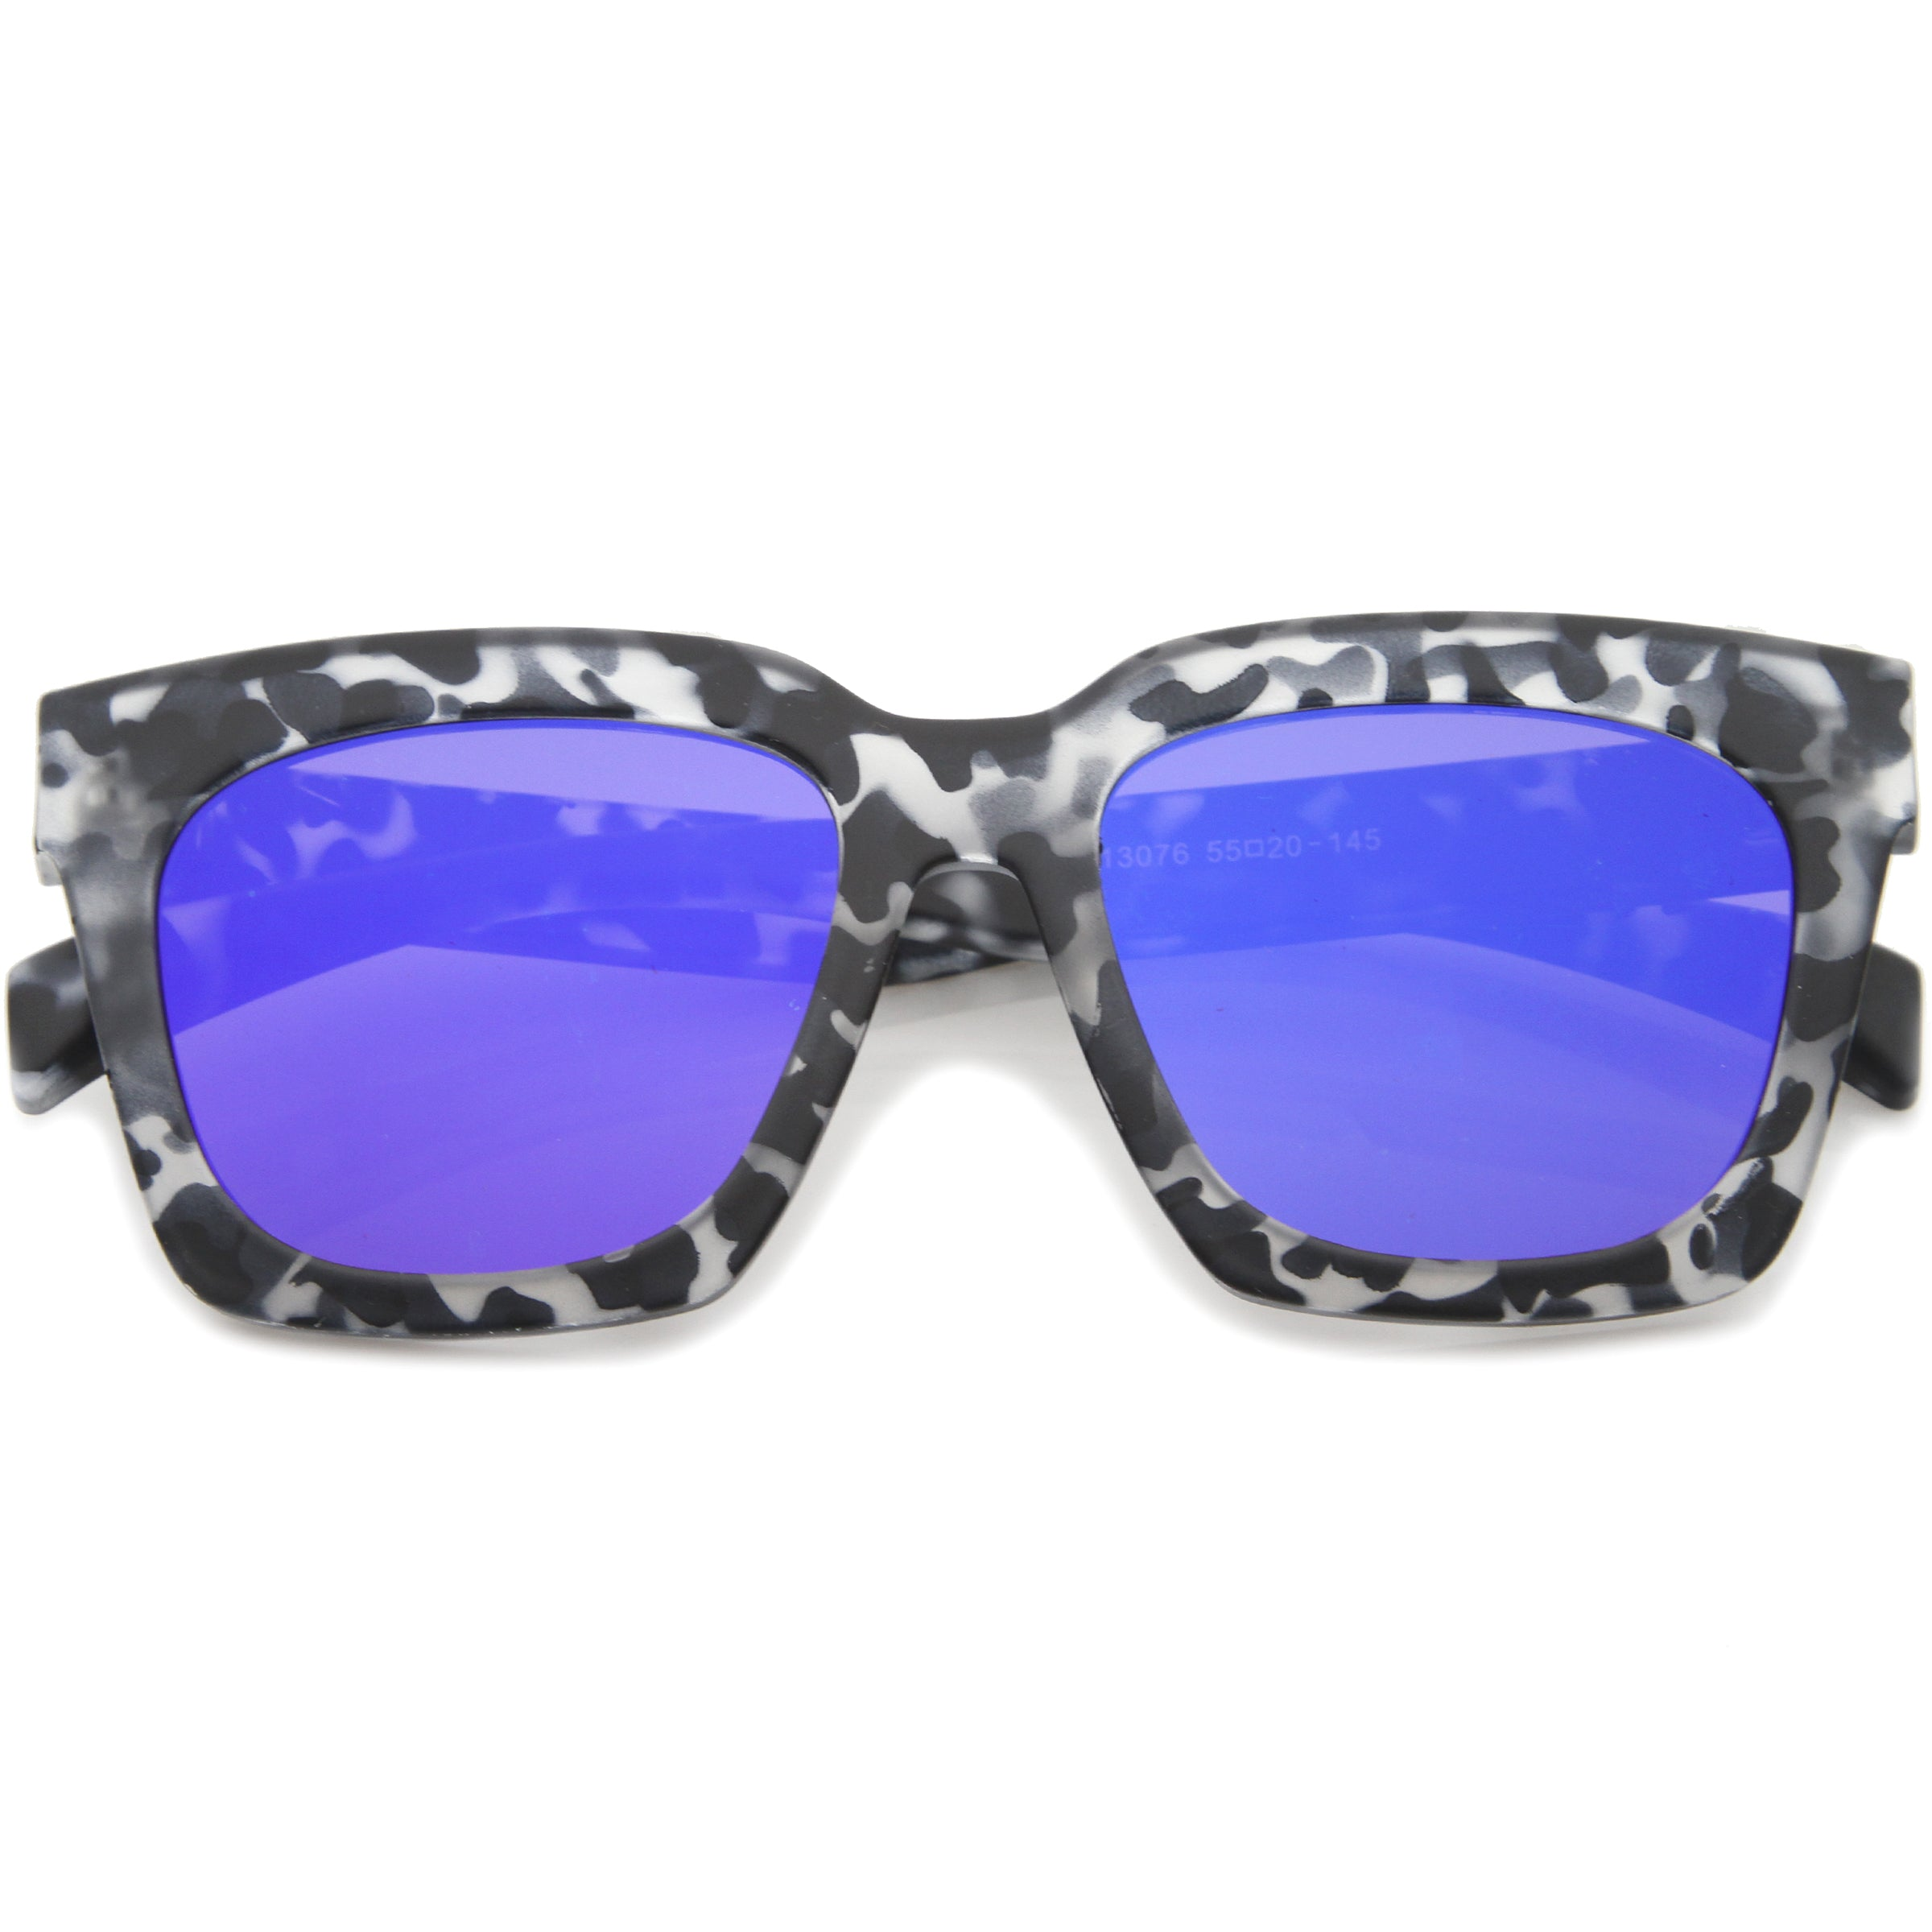 Retro Matte Horn Rimmed Colored Mirror Flat Lens Oversize Square Sunglasses 54mm - sunglass.la - 13